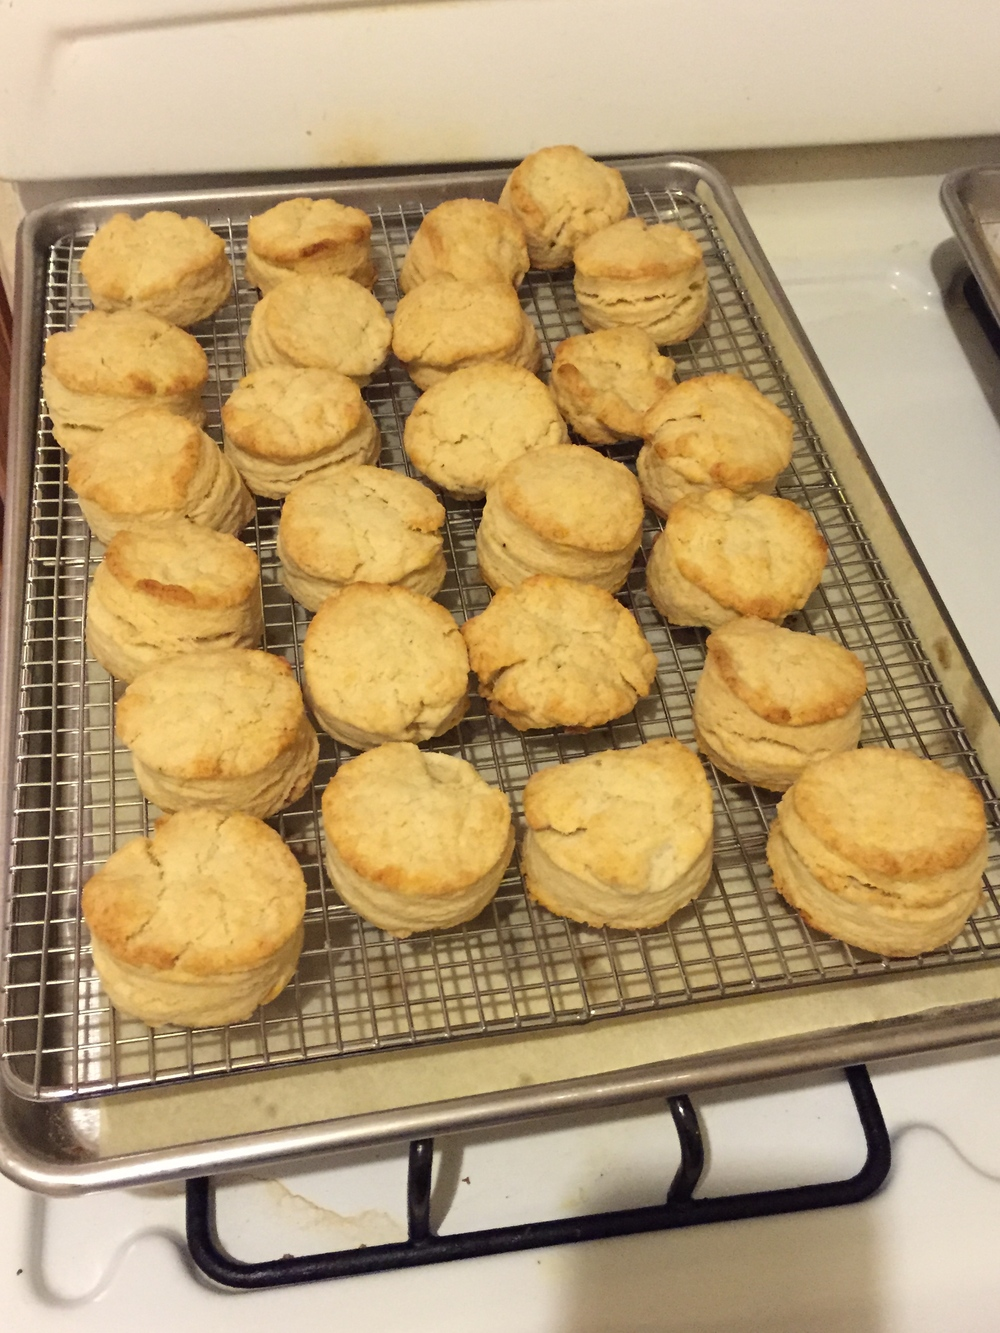 Buttermilk biscuits can be made with buttermilk or heavy cream